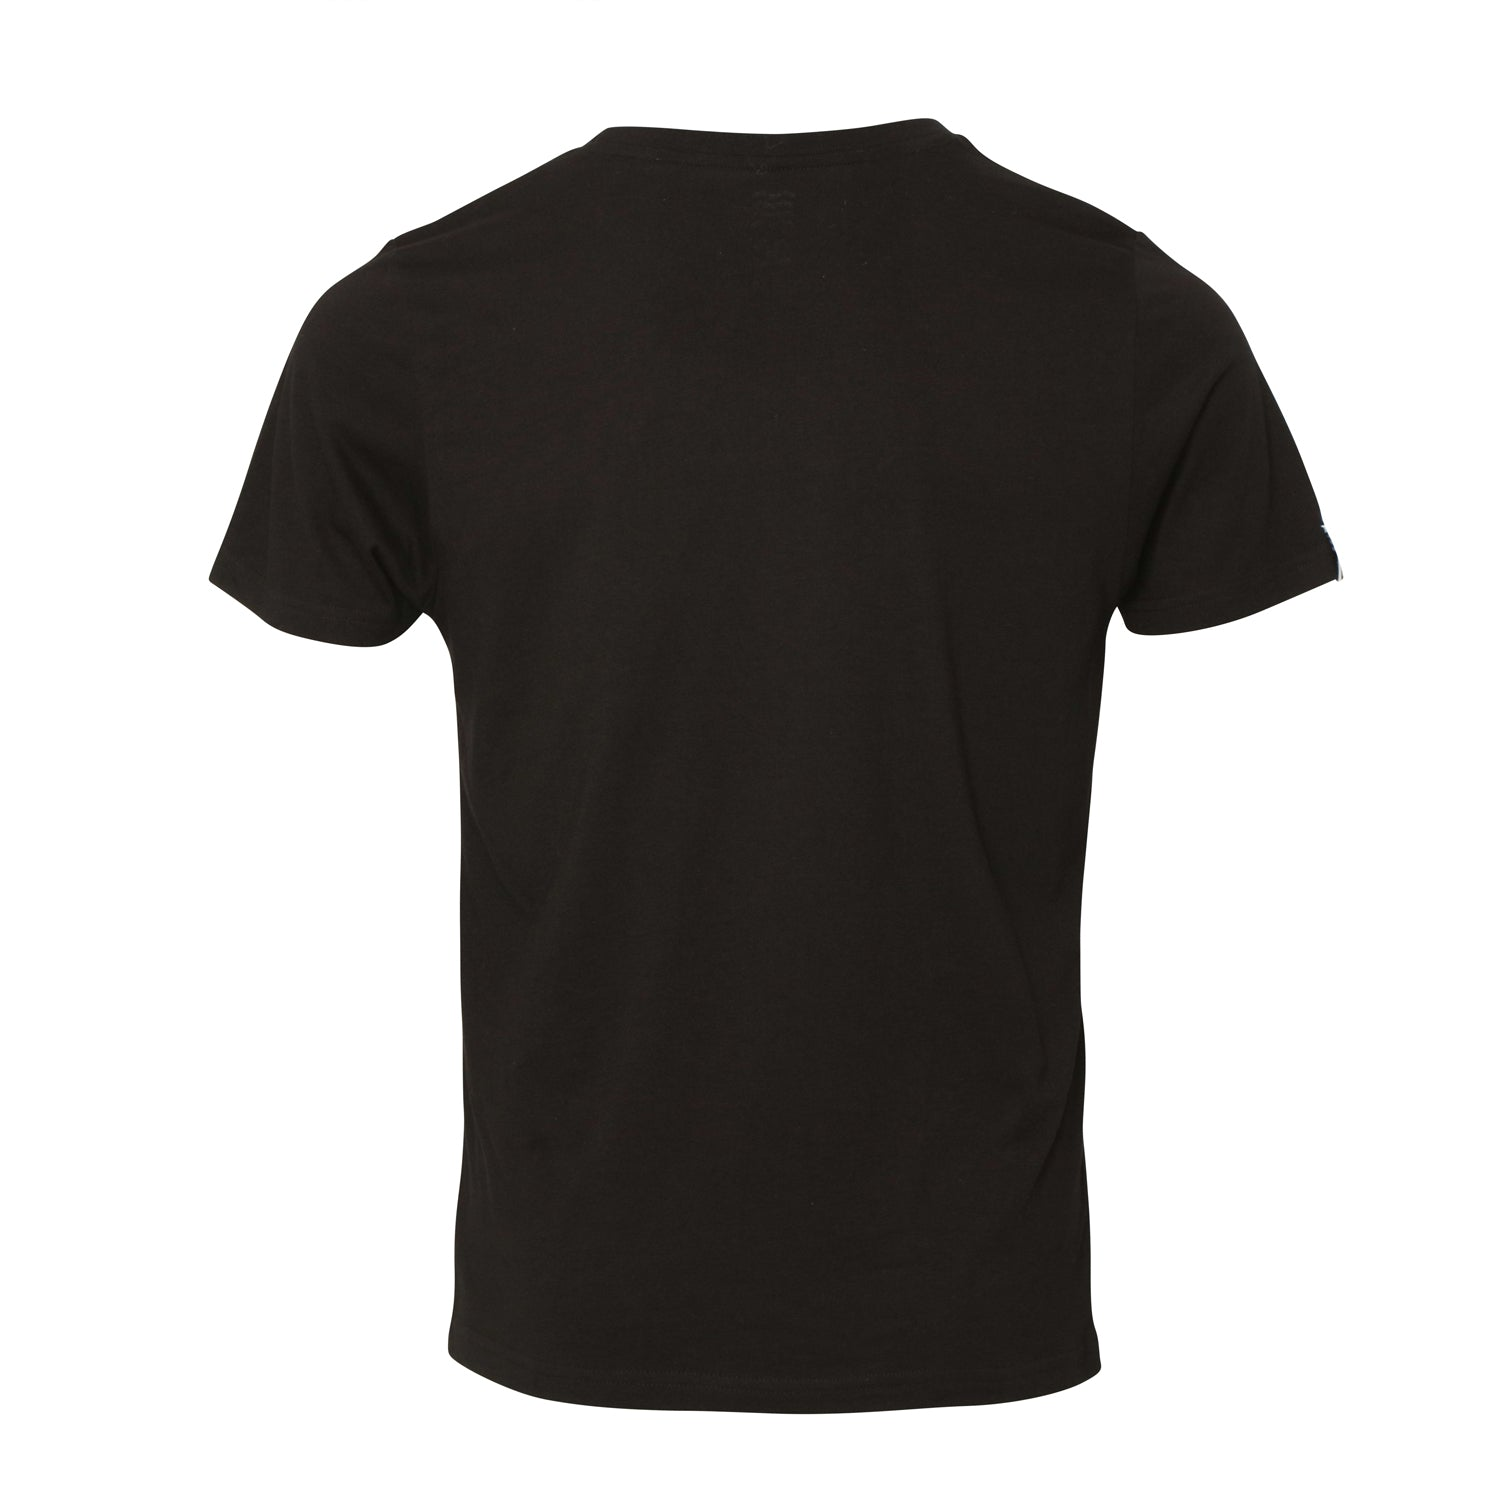 OC Eco Black T Shirt